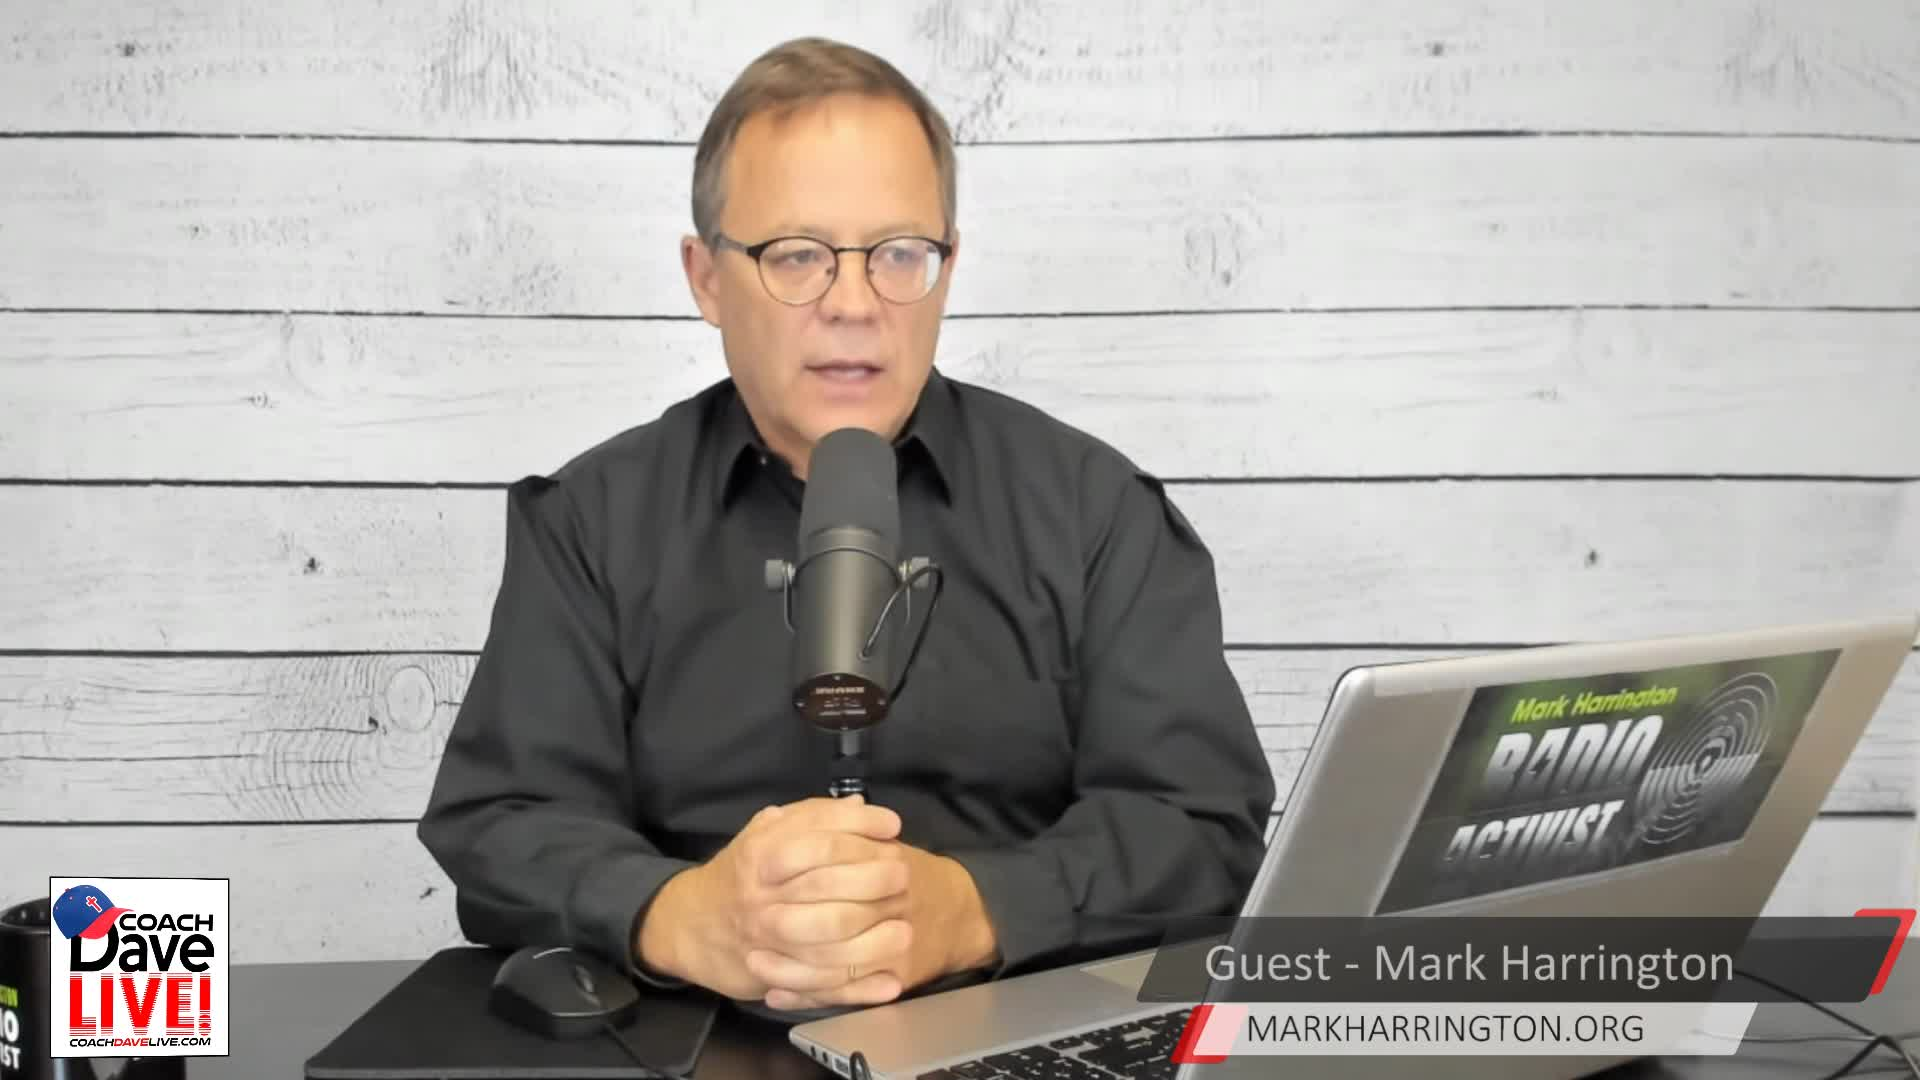 Coach Dave LIVE | 10-29-2020 | CREATED EQUAL